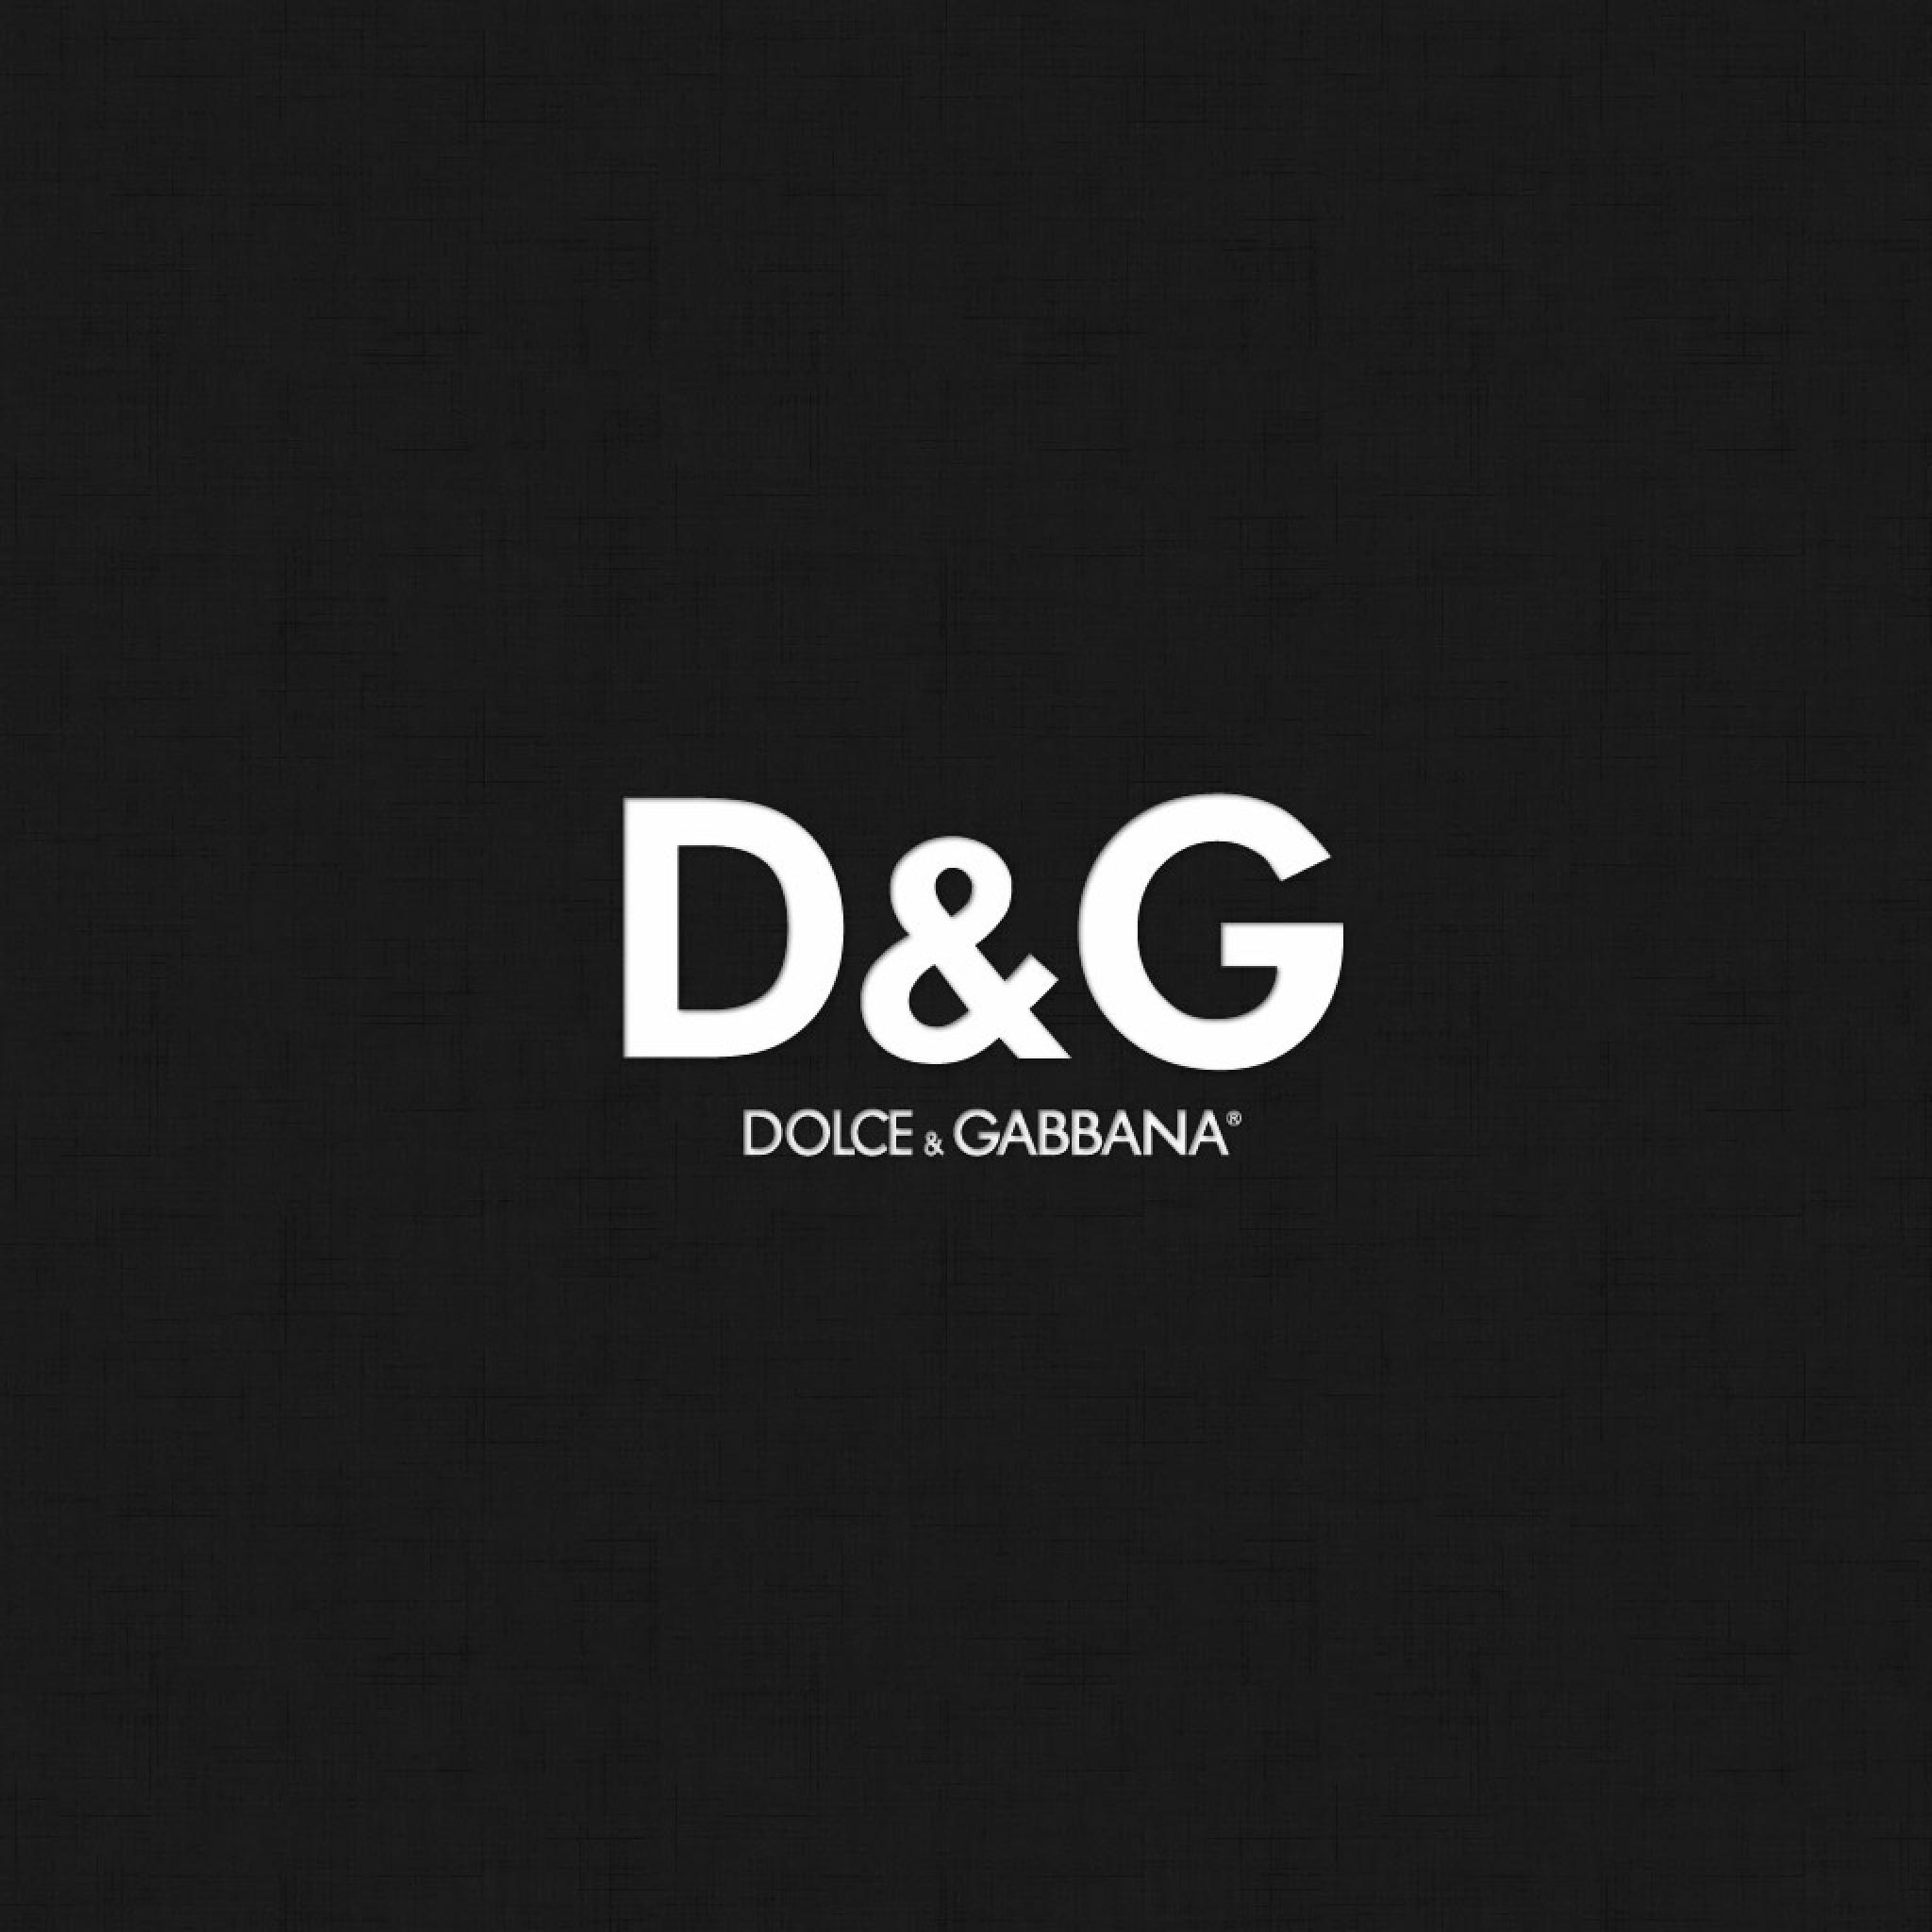 Free Wallpaper Old Cars Miscellaneous Dolce And Gabbana Logo Ipad Iphone Hd